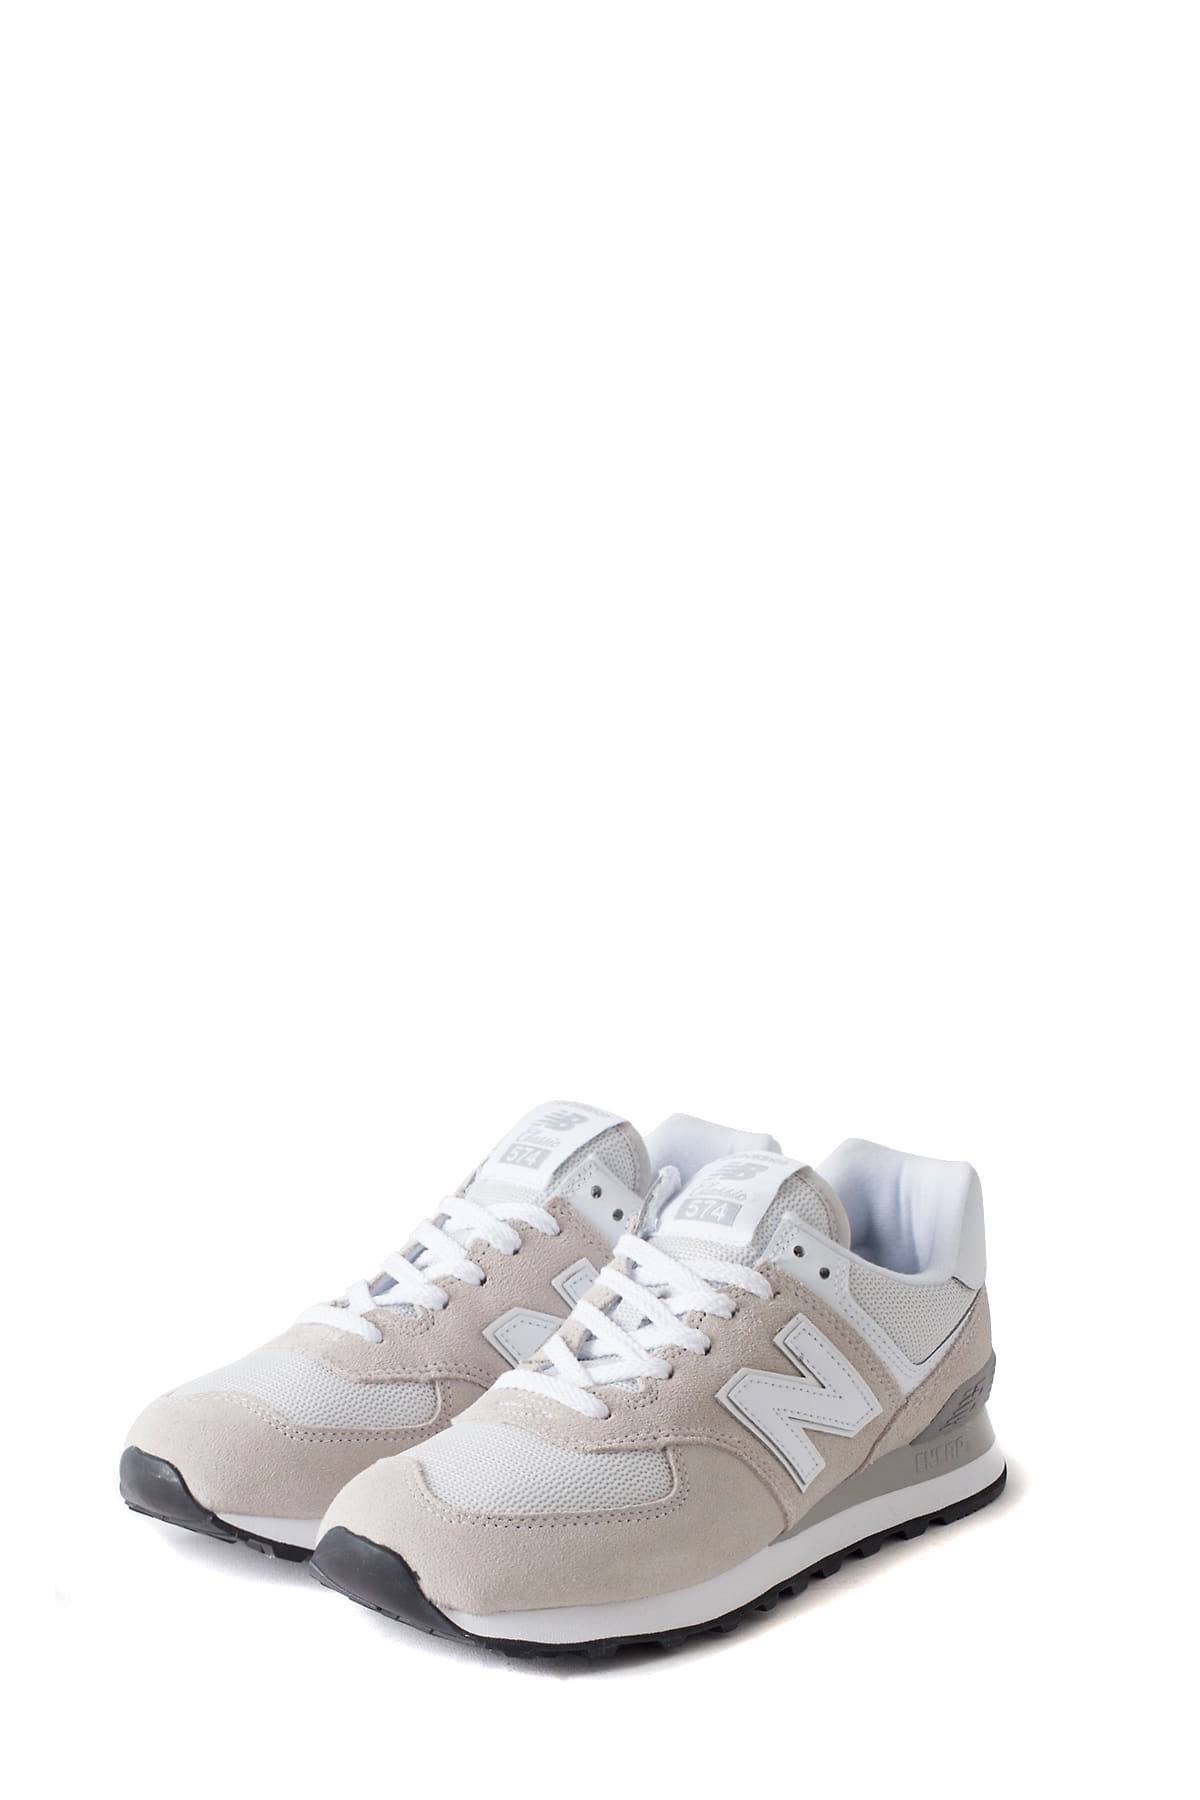 New Balance : ML574EGW (Ivory)